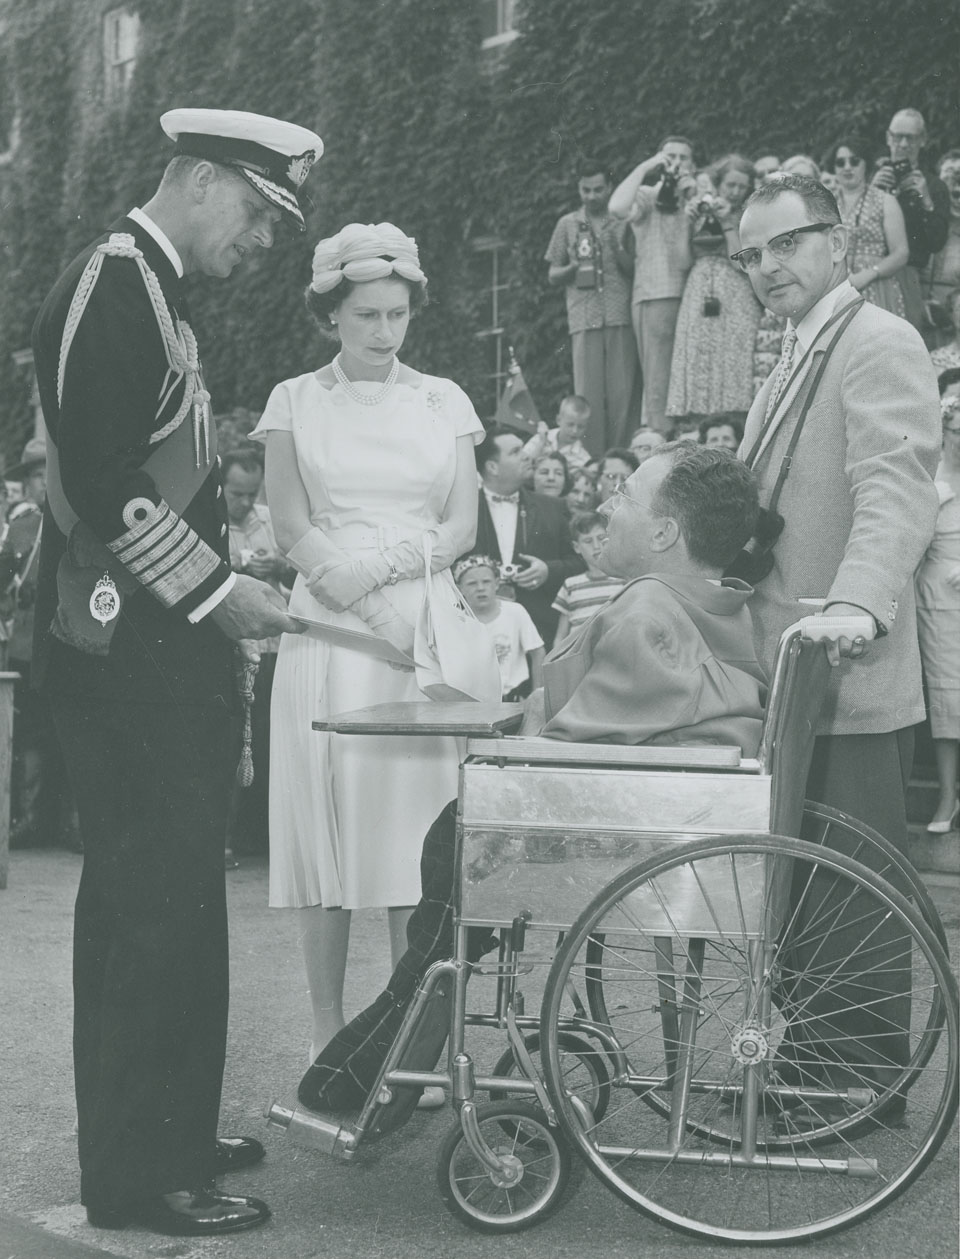 Queen Elizabeth and Prince Philip speaking with Lunenburg artist Earl Bailly at the University of King's College, Halifax